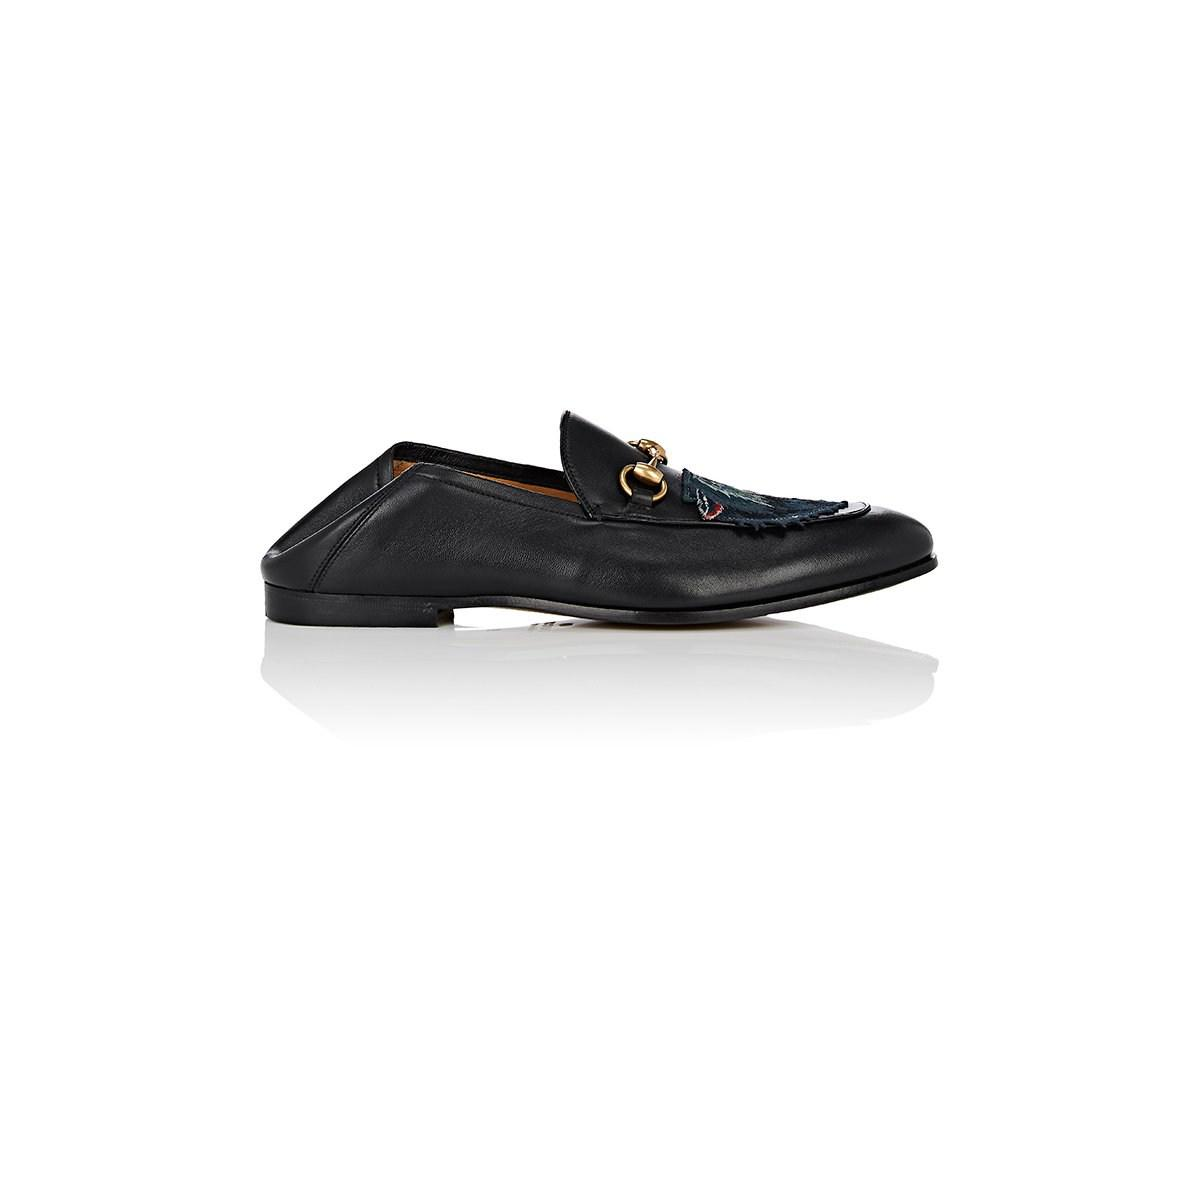 eb8eb27da39 Gucci Wolf-embroidered Leather Loafers in Black for Men - Lyst